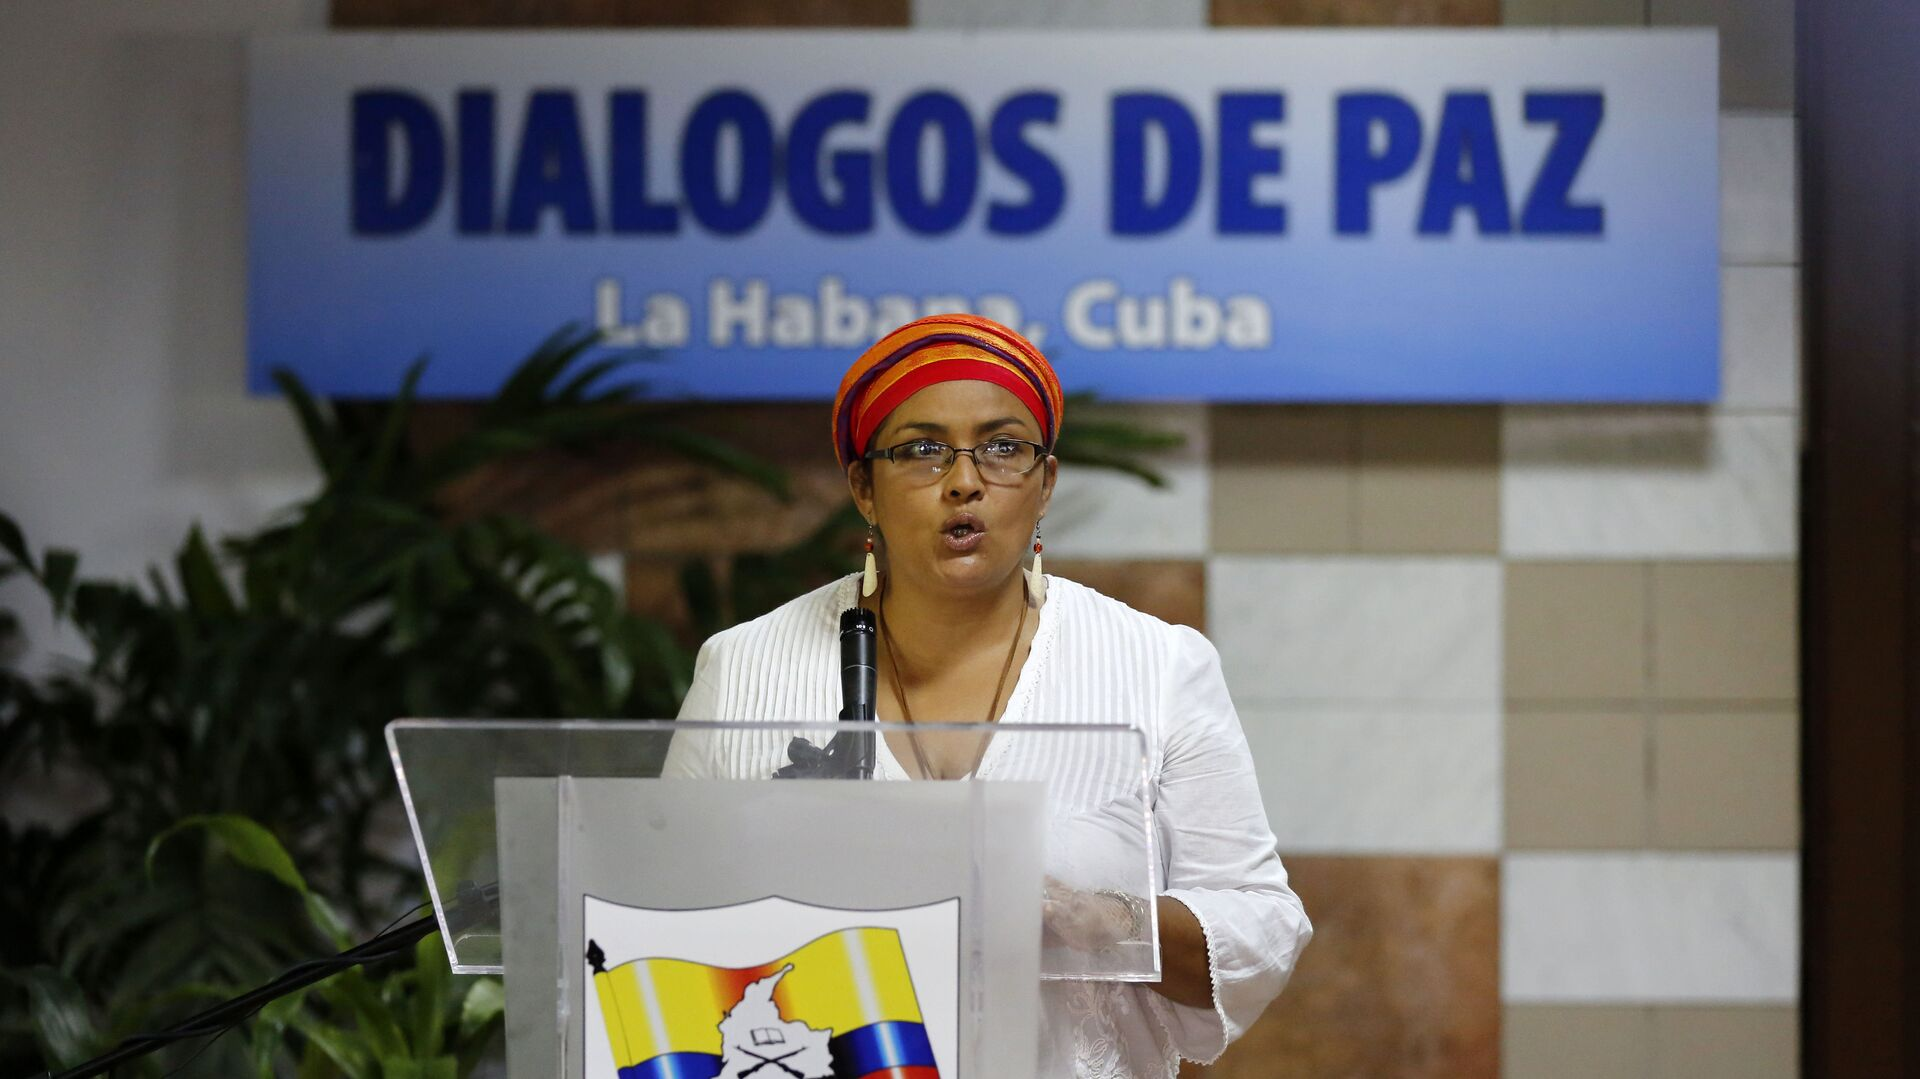 Victoria Sandino, member of the Revolutionary Armed Forces of Colombia, FARC, reads a statement before the start of a new round of peace talks between the FARC rebels and the government of Colombia, in Havana, Cuba, Thursday, May 21, 2015 - Sputnik Mundo, 1920, 10.08.2021